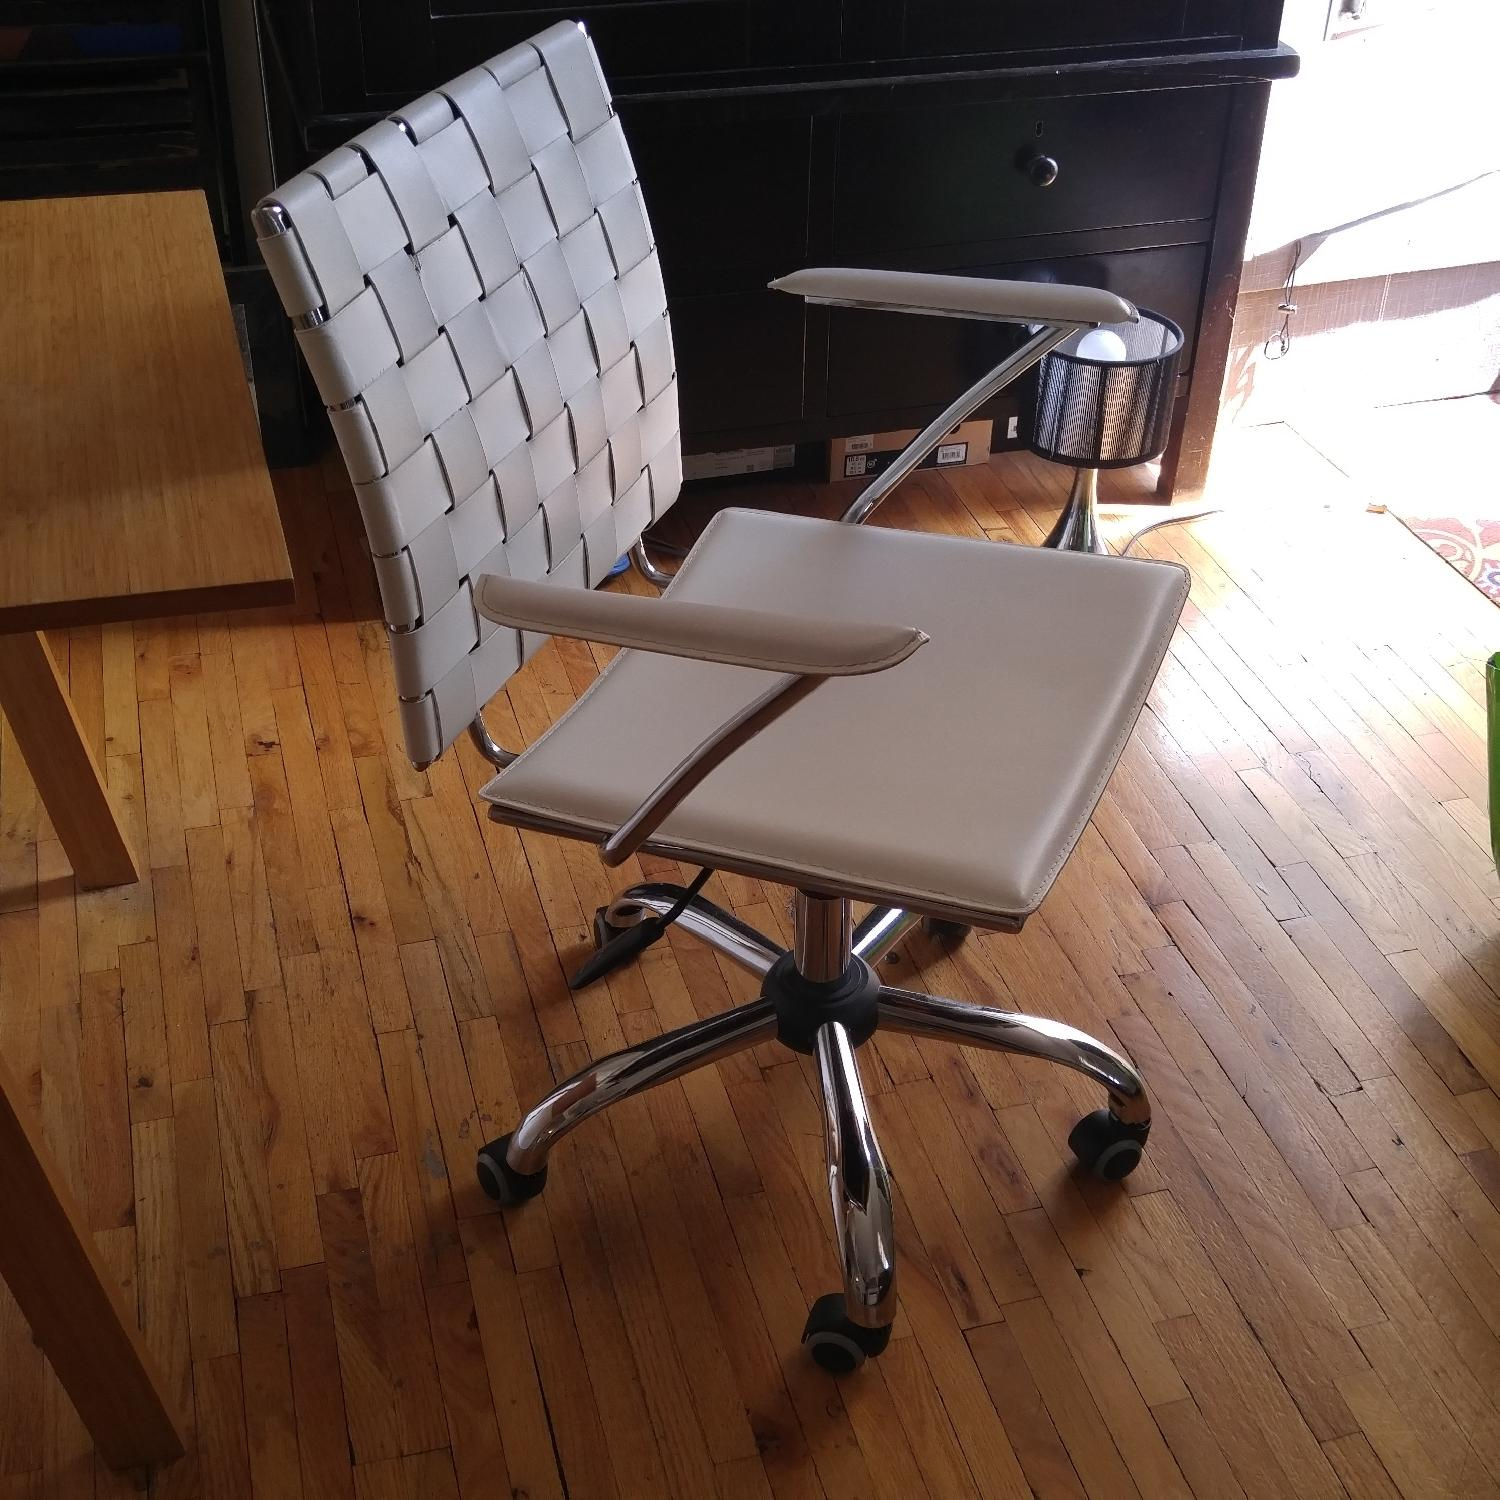 Italian Made White Leather & Chrome Office Chair - image-3